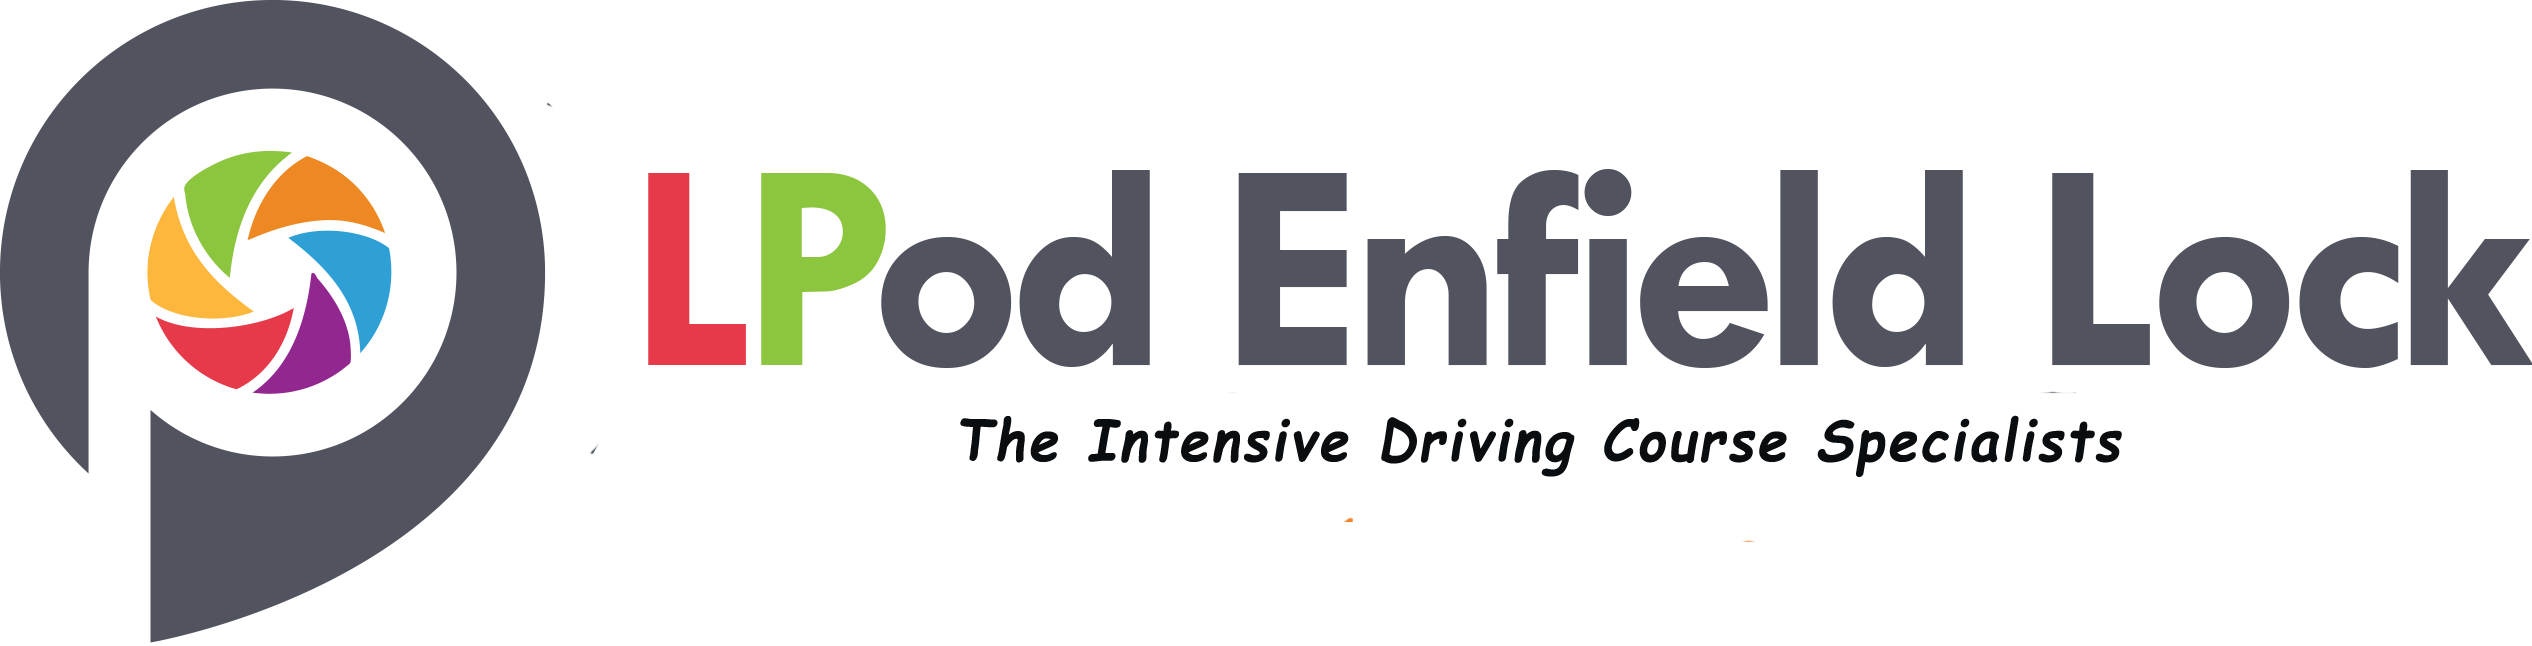 intensive driving courses Enfield Lock, one week driving courses Enfield Lock, fast pass driving courses Enfield Lock, intensive driving course Enfield Lock, driving school Enfield Lock, automatic driving lessons Enfield Lock, automatic courses Enfield Lock, driving lessons Enfield Lock